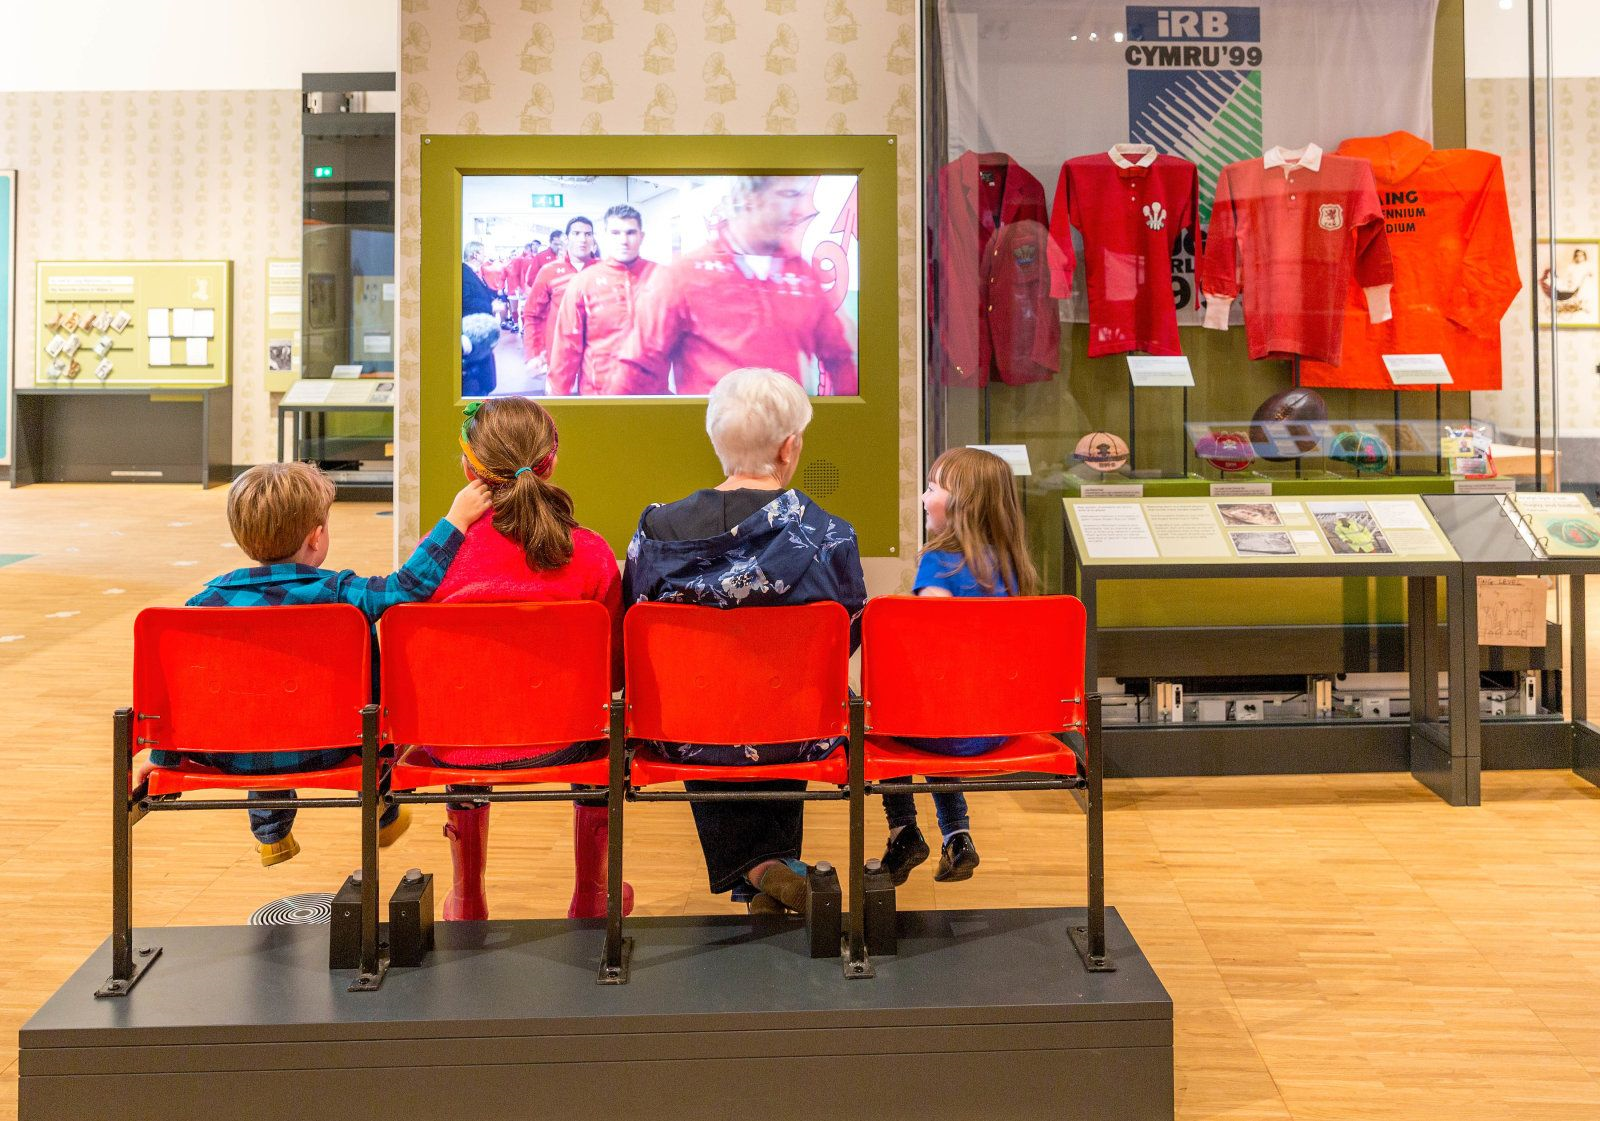 A family sits in front of a video screen at St Fagans National Museum of History.